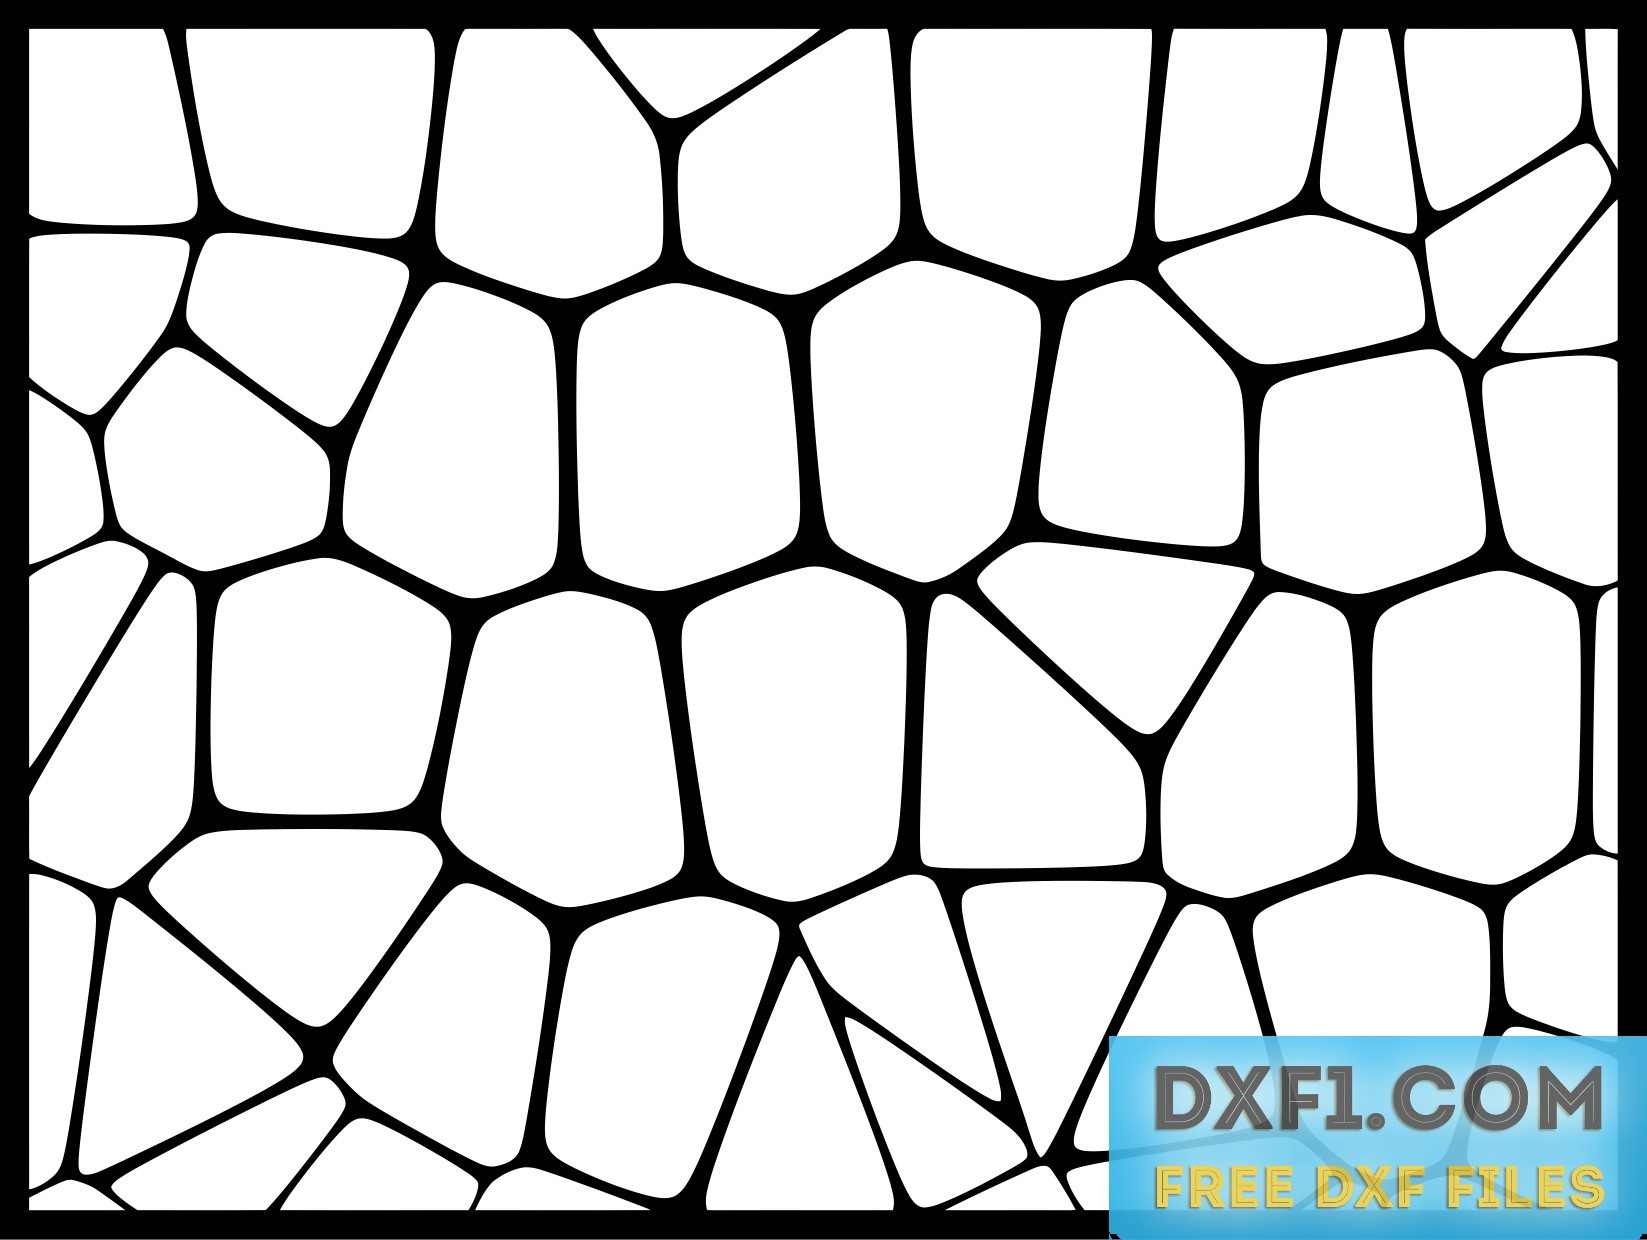 Voronoi patterns - FREE DXF FILES  FREE CAD SOFTWARE - DXF1 com